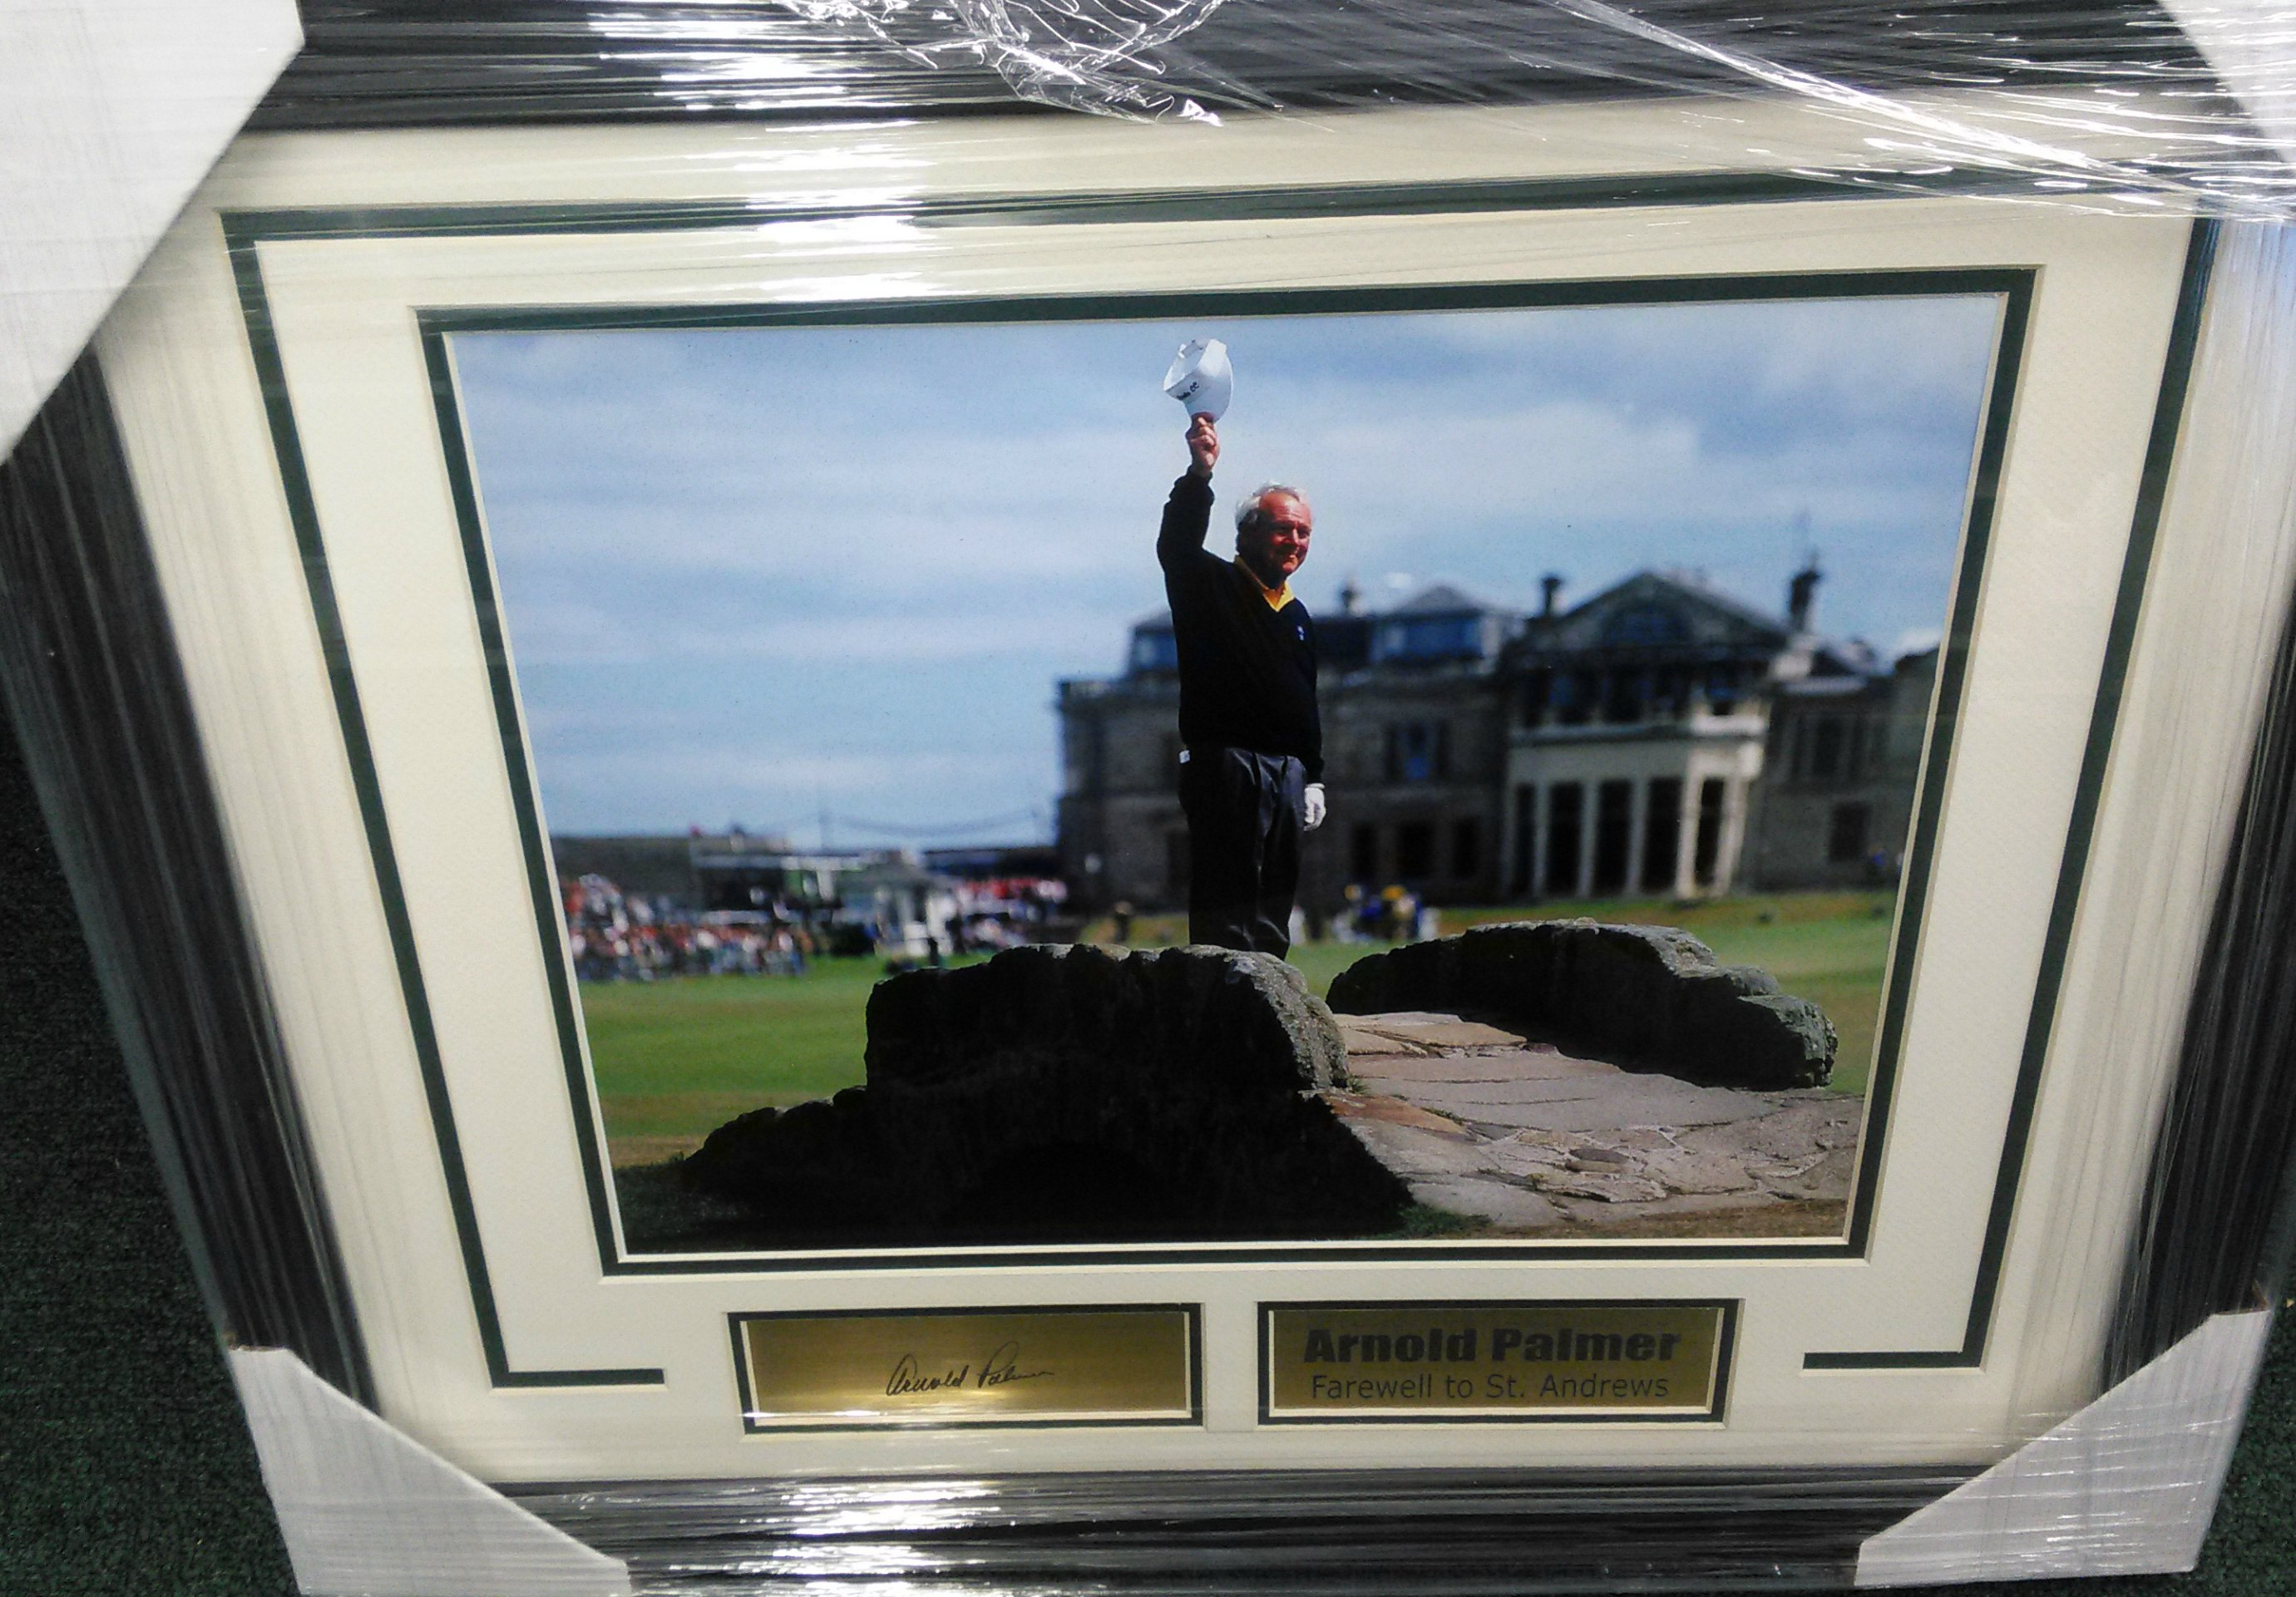 Arnold Palmer Farewell to St. Andrews***